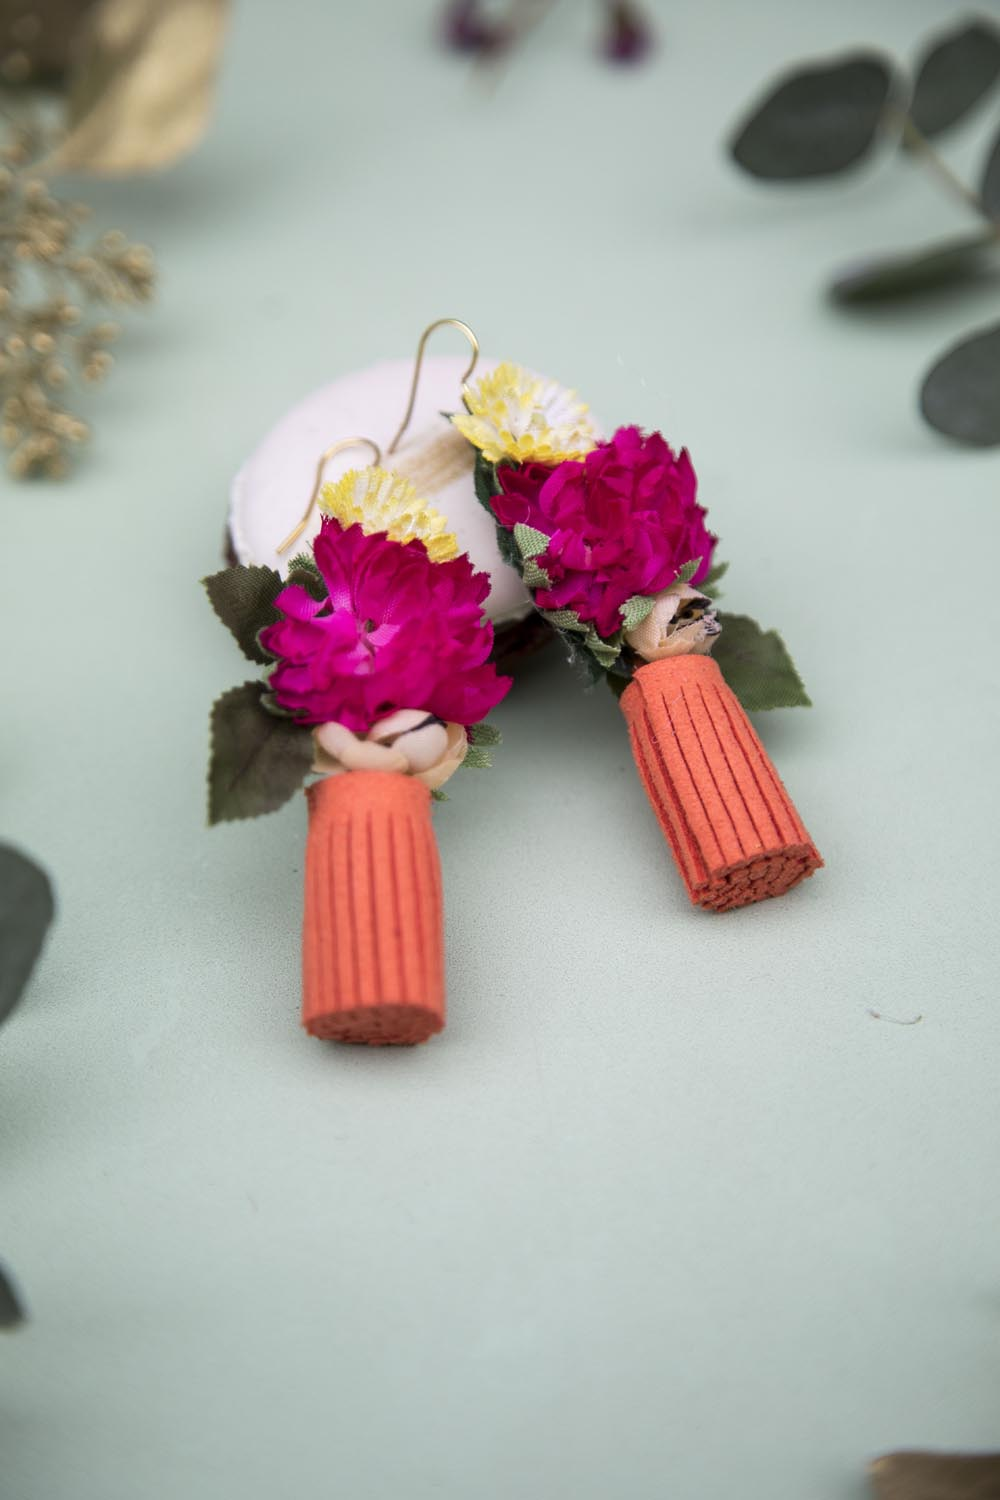 We-Are-Flowergirls-Misdummer-Collection-Flower-Earrings-Lucy-1.jpg